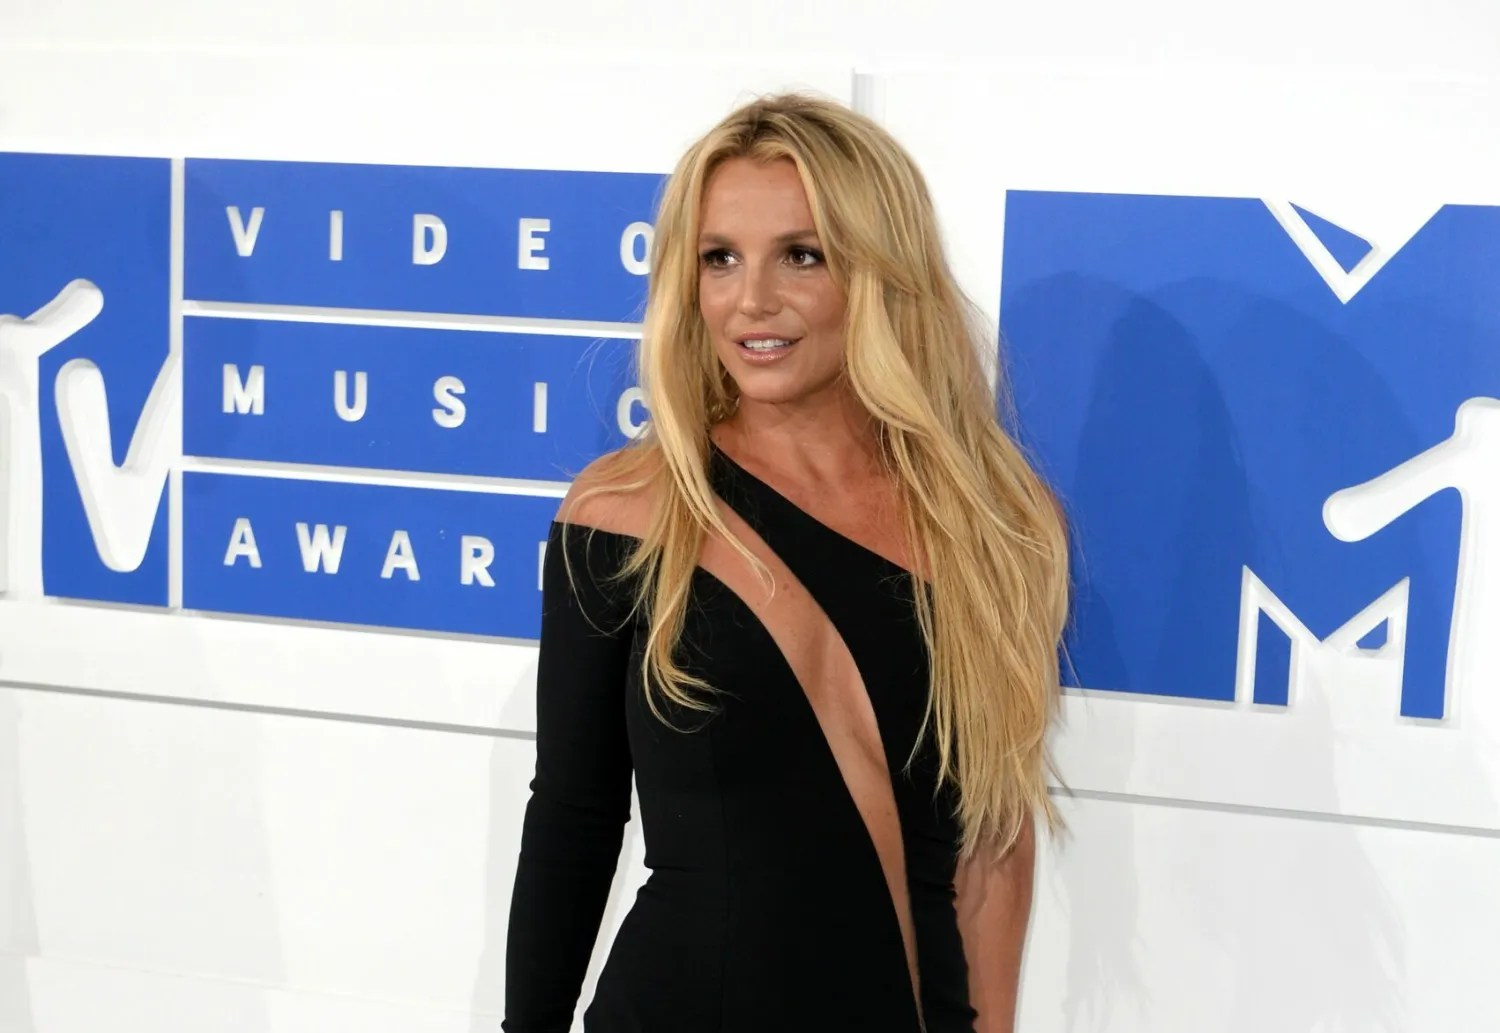 Britney Spears Explains Why She Posts Topless Photos On Instagram